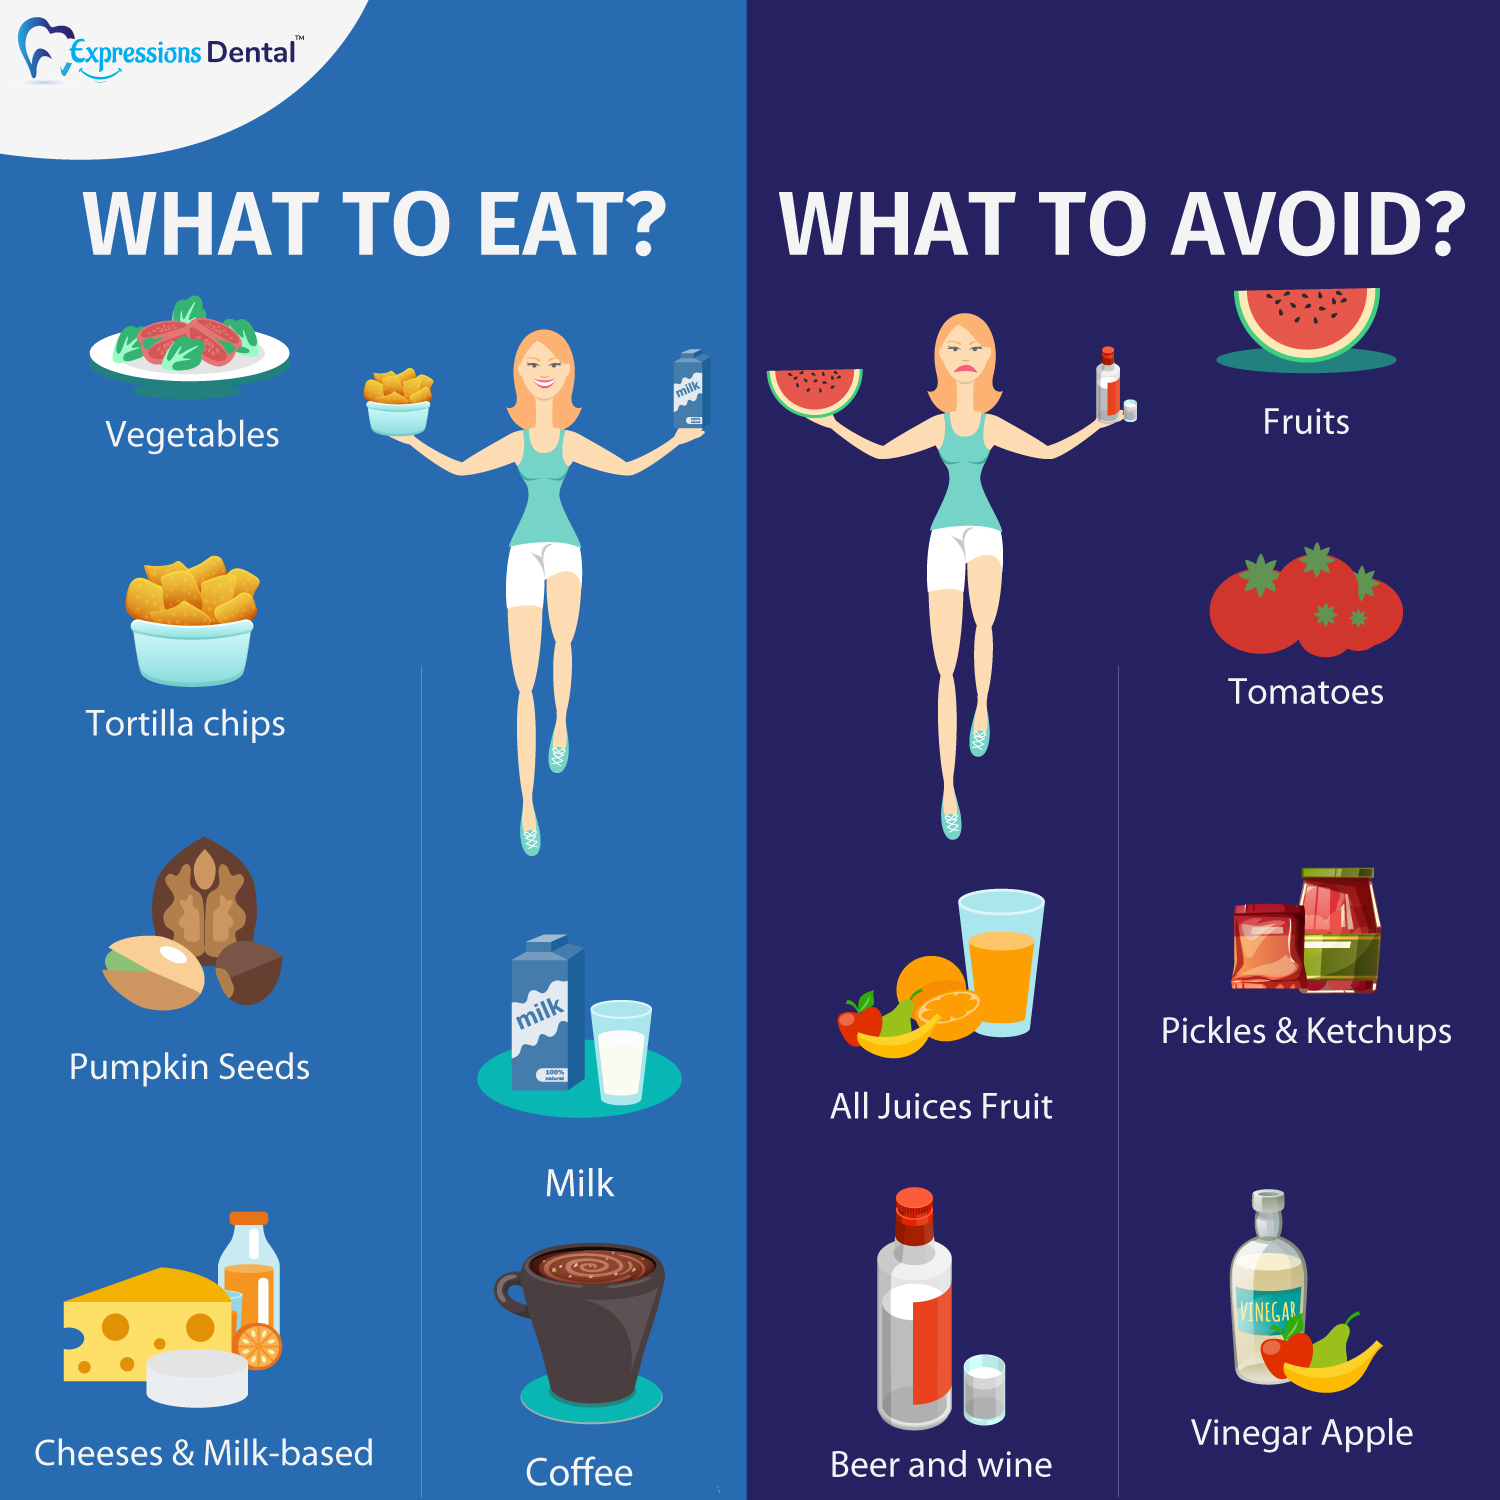 Between Meals - How to Avoid Acid Attack